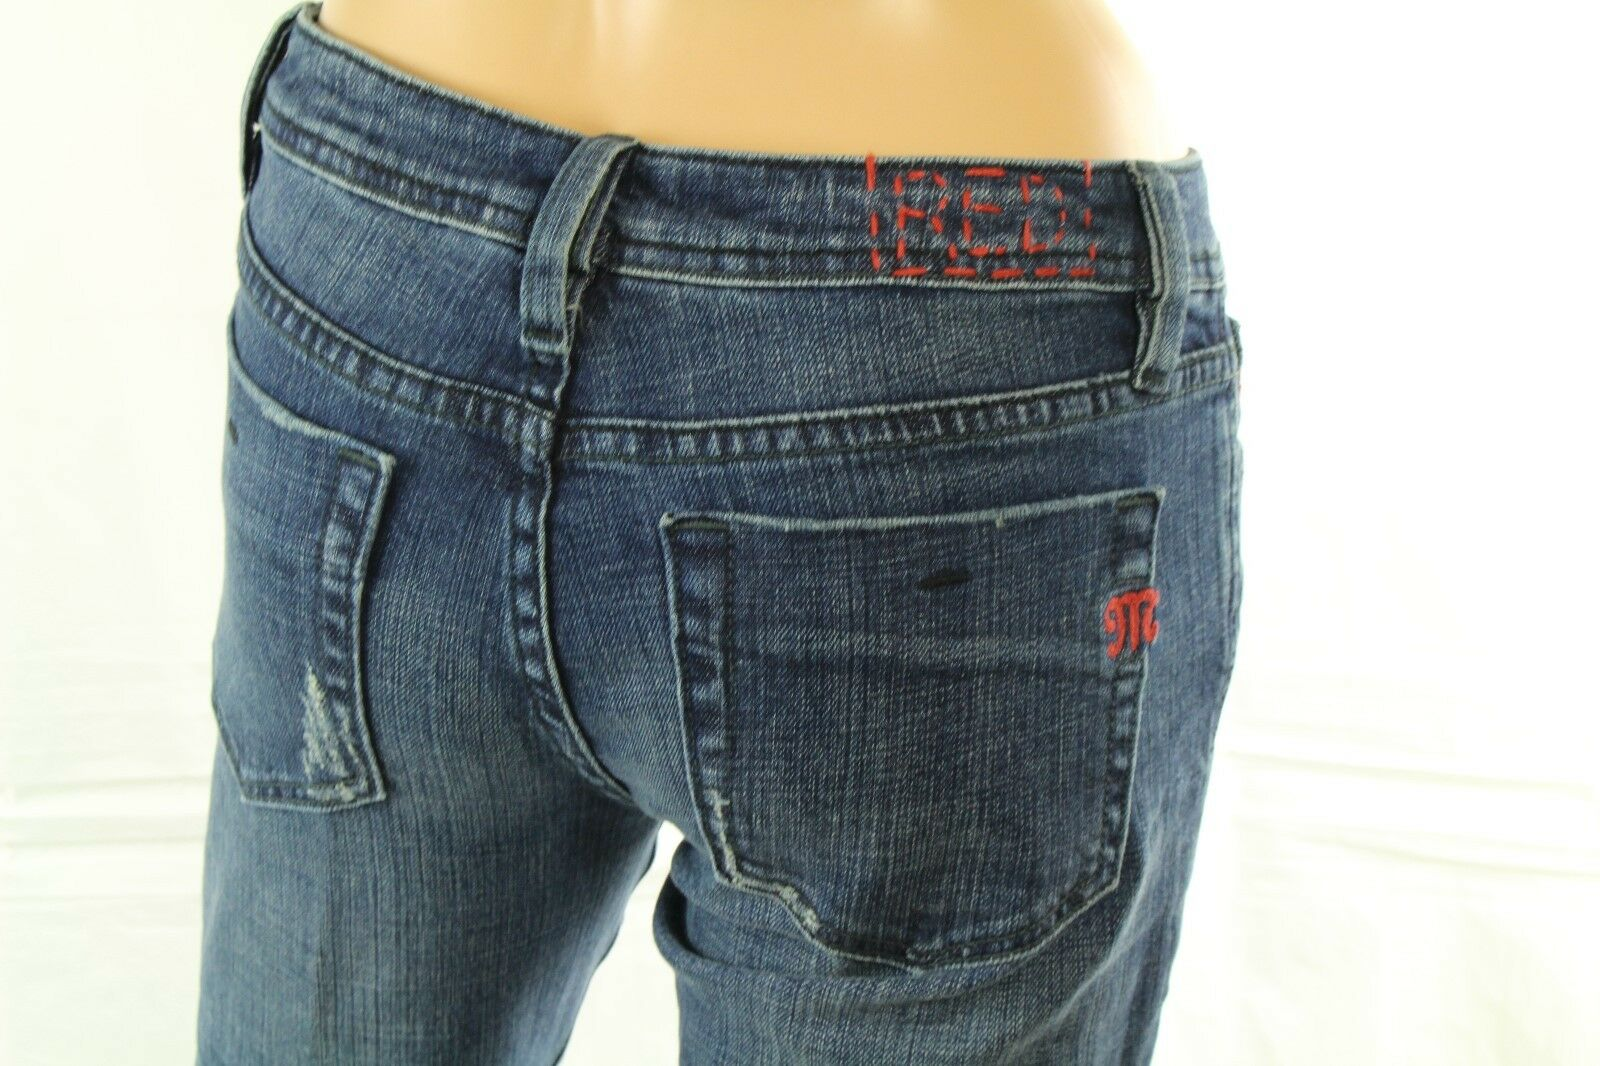 Miss Me Women's Jeans Cameron Red Label High Waisted Size 27